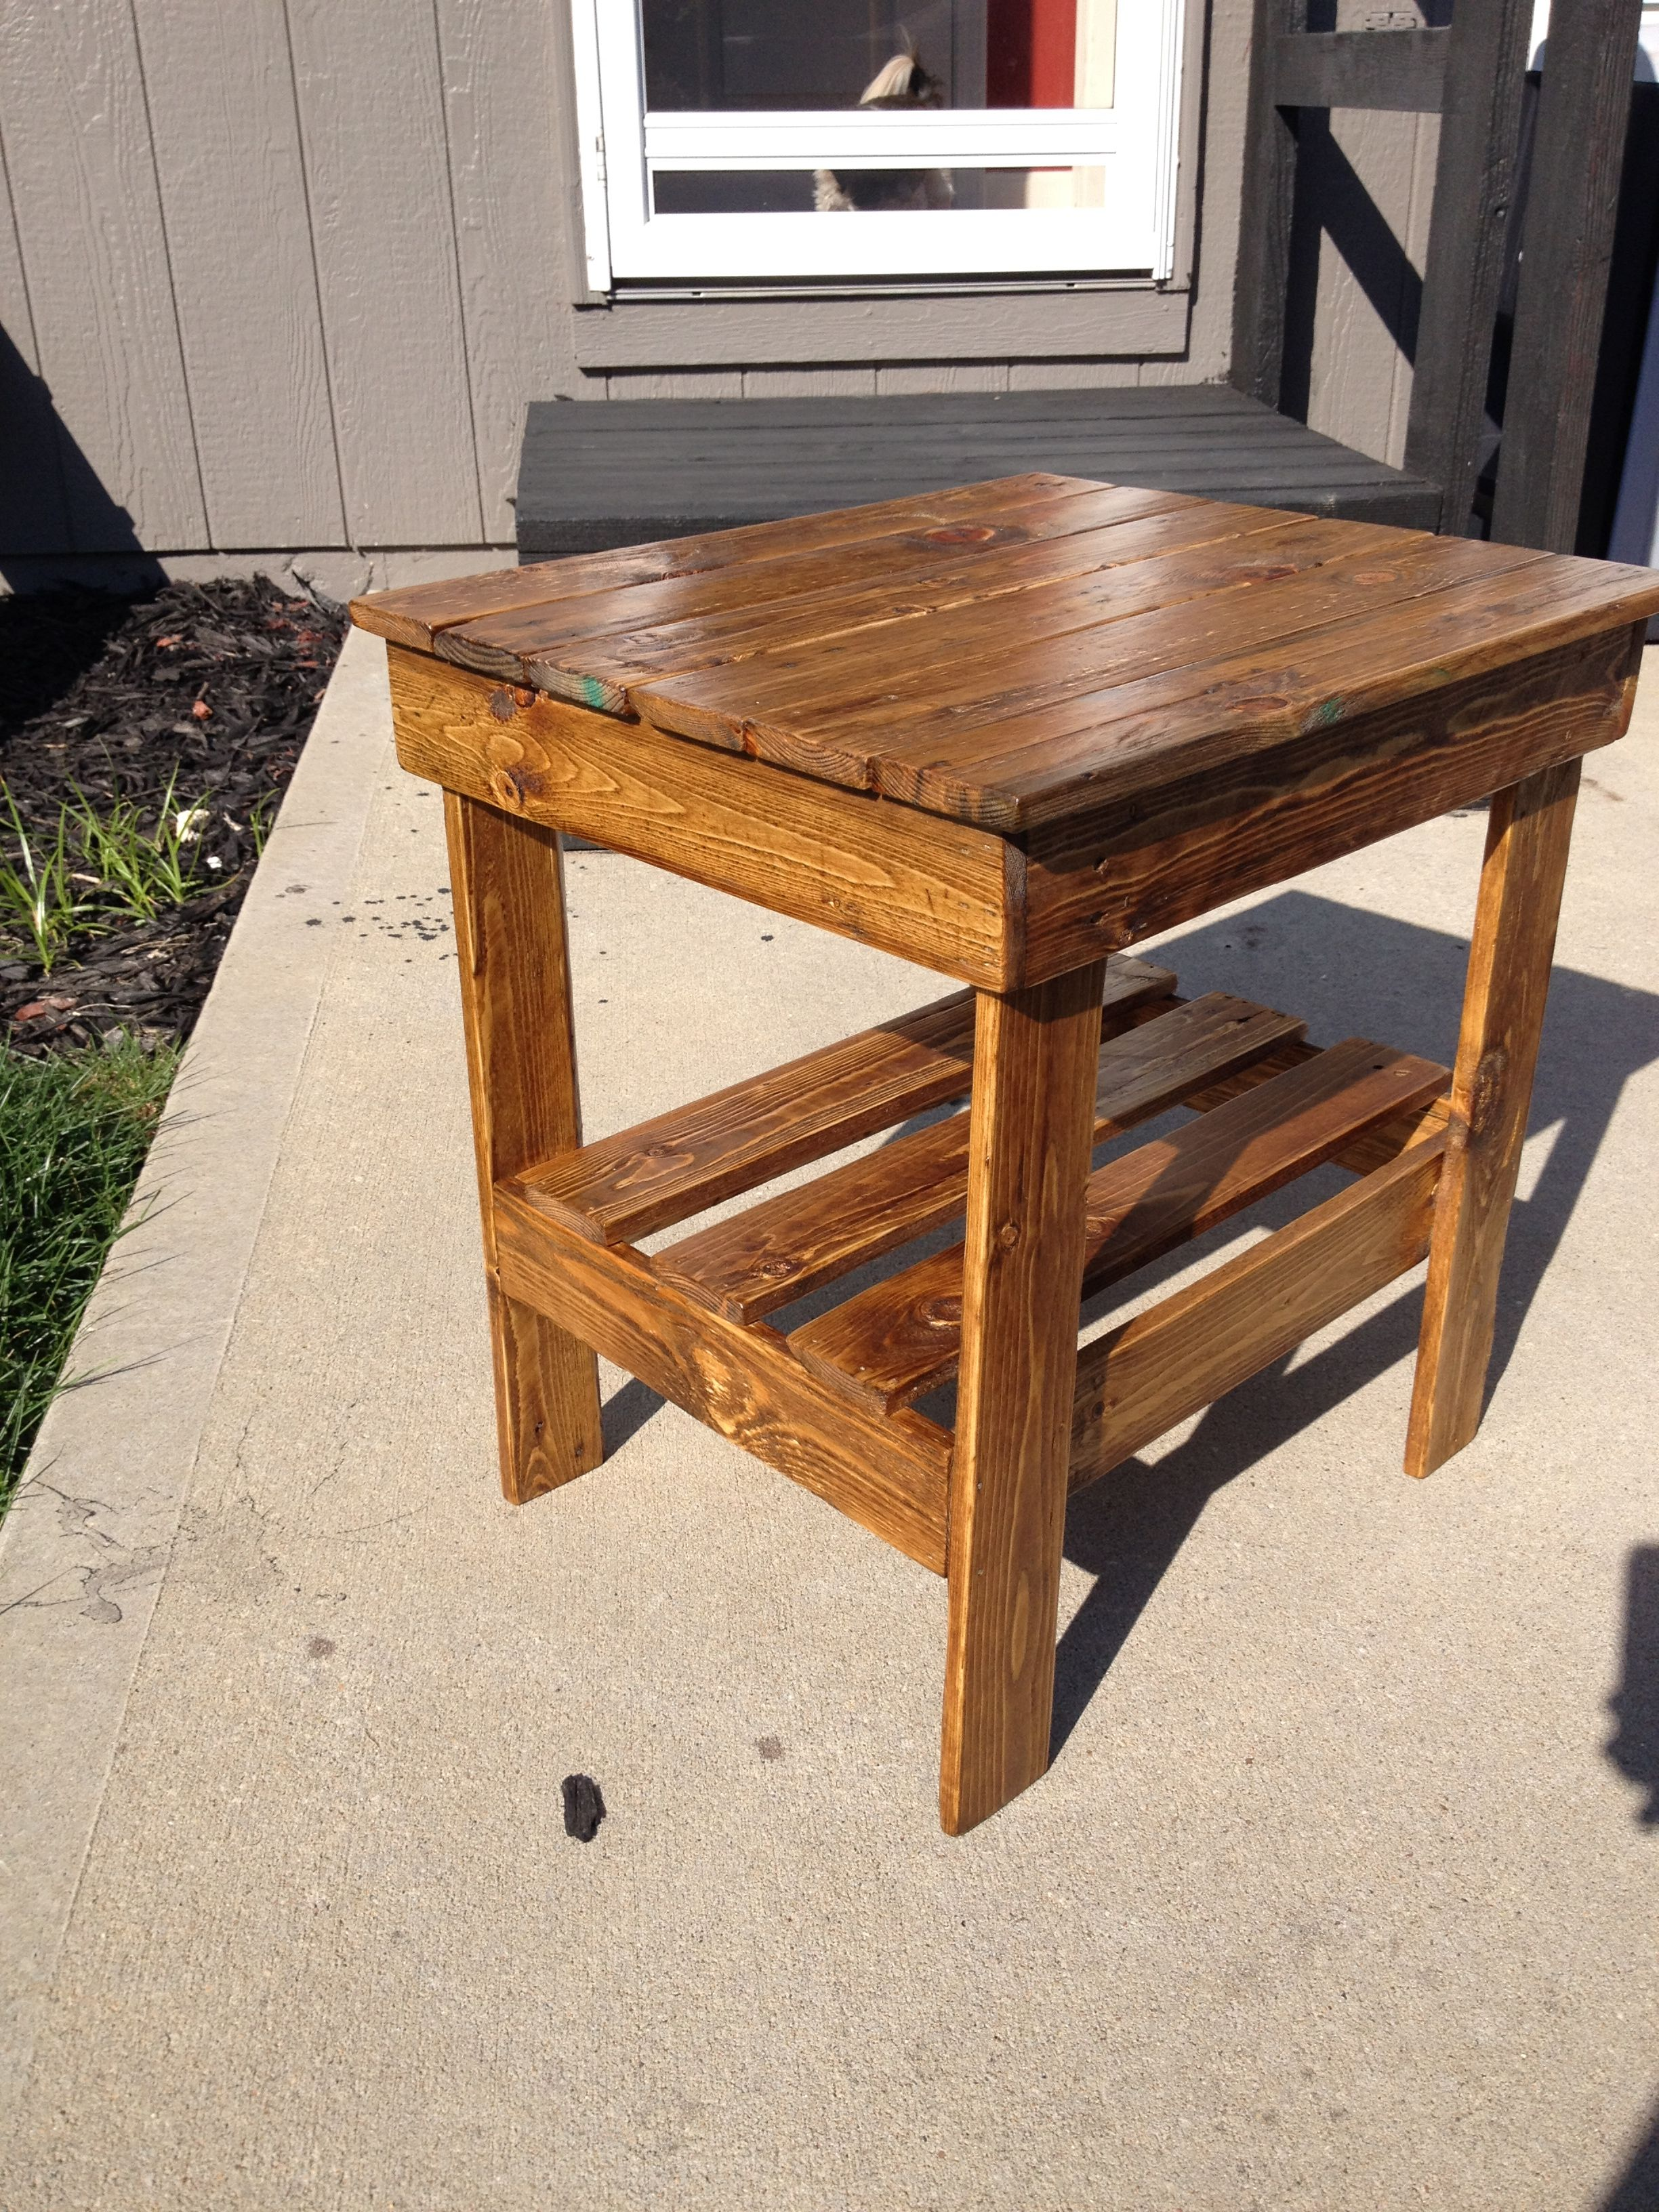 My First End Table Made Out Of Pallets Time To Make A Few More With A Few Modifications Pallet End Tables Make A Table Home Decor